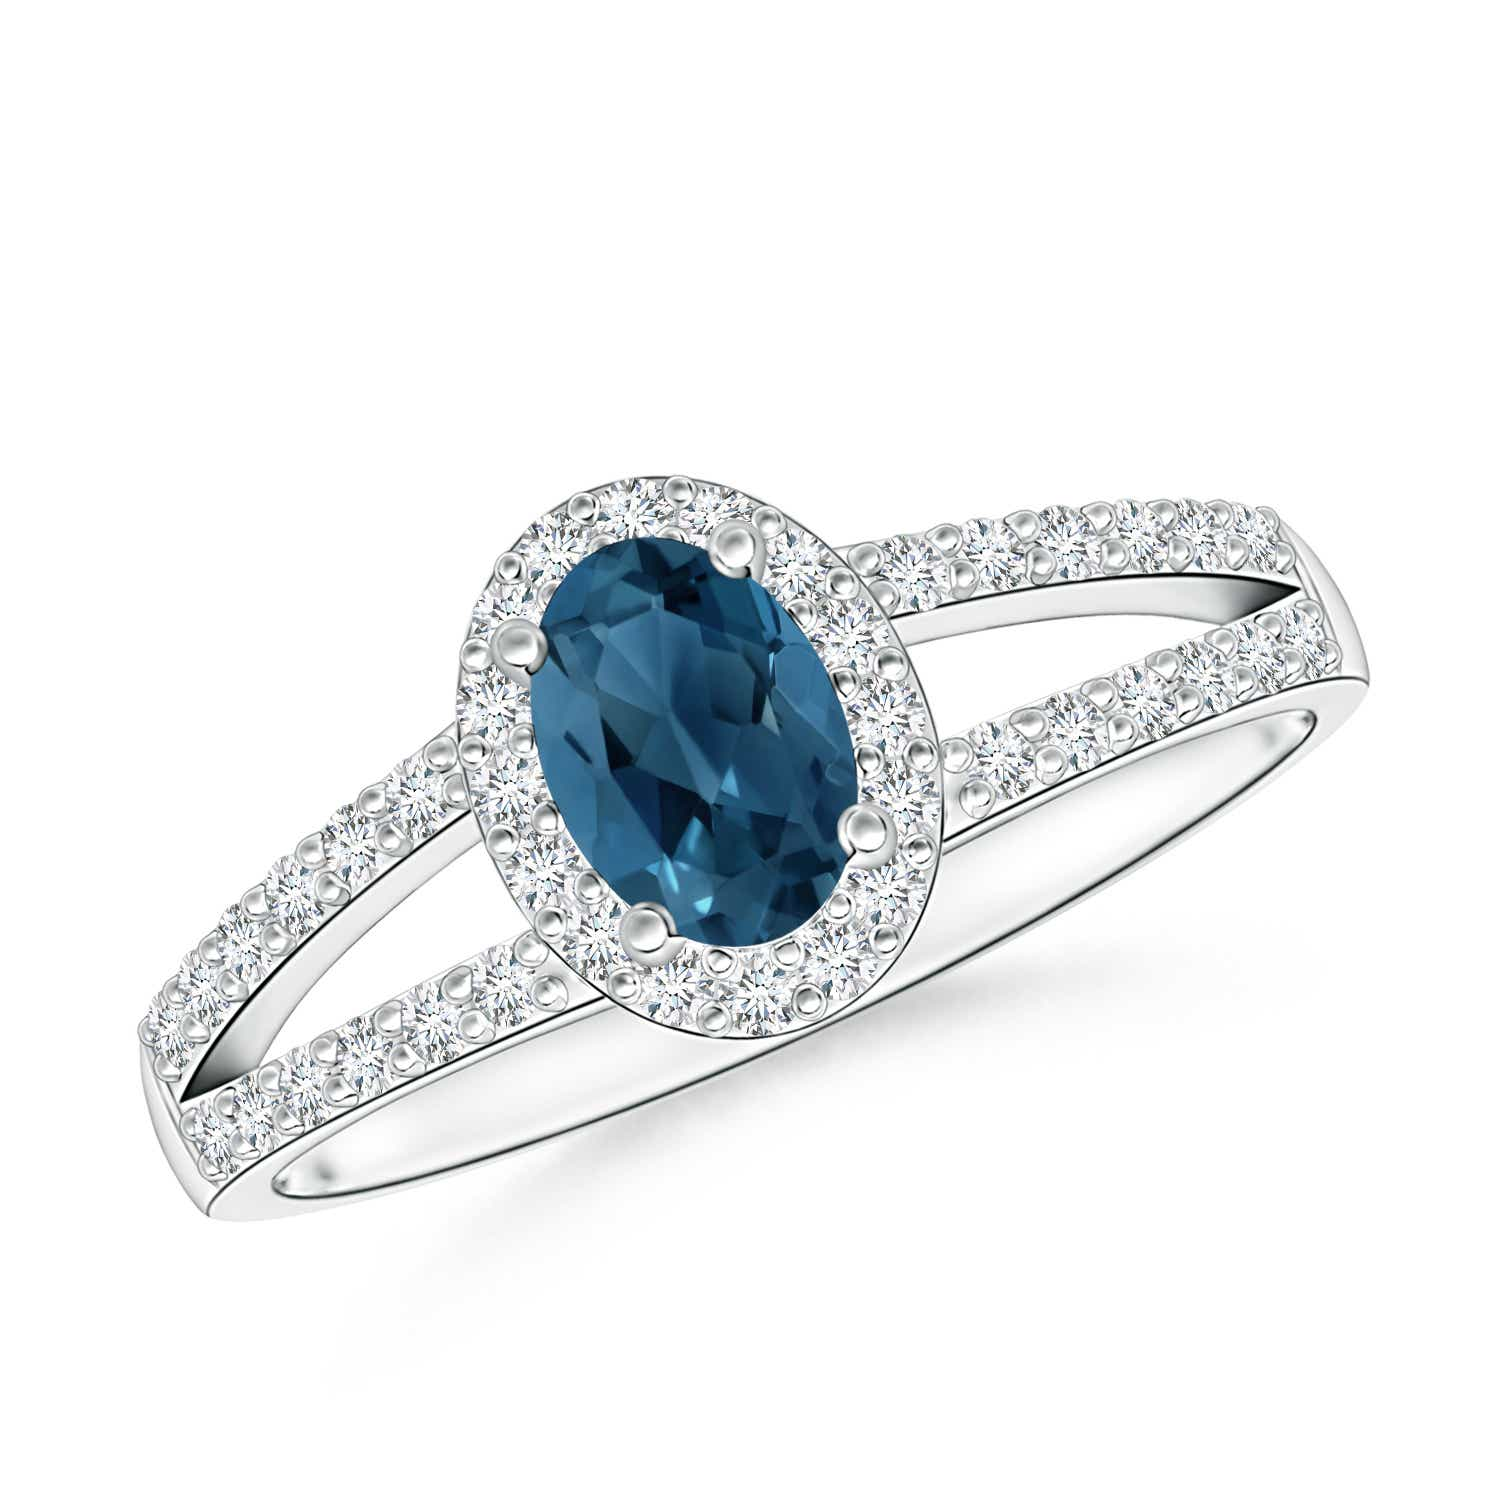 Angara Natural London Blue Topaz Engagement Ring in Platinum 4LFpBc